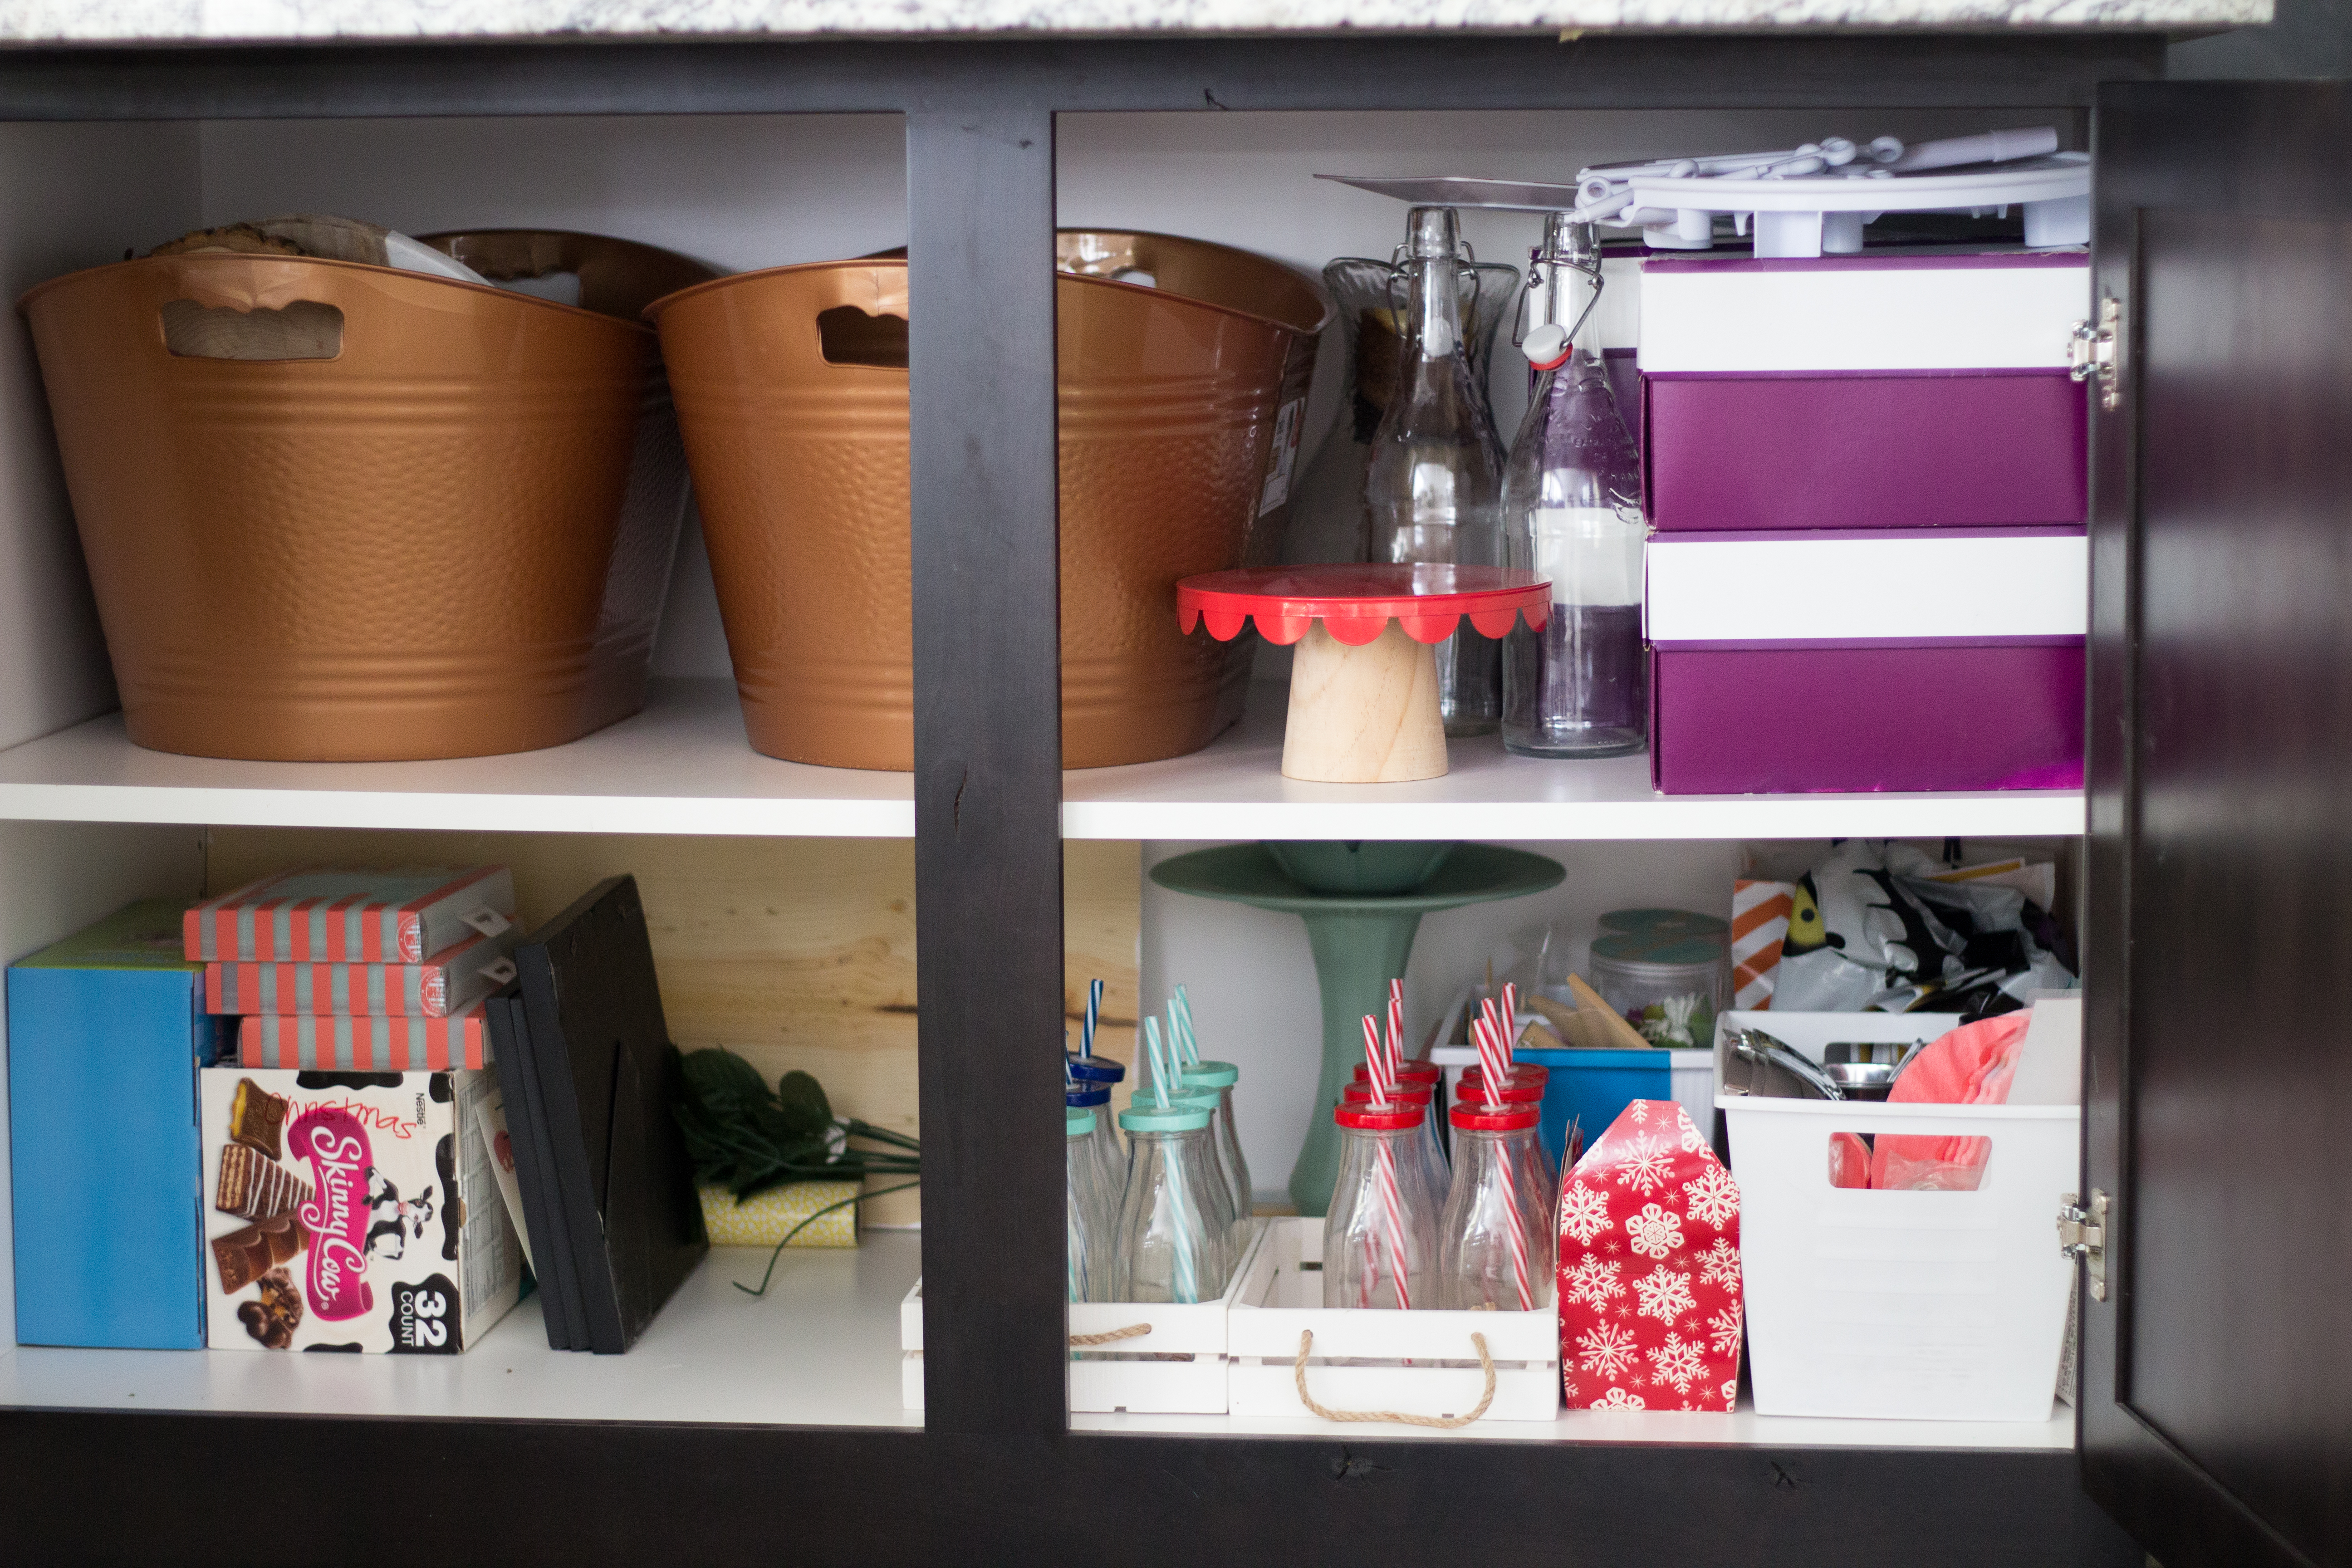 Project Organization: Party Cabinet